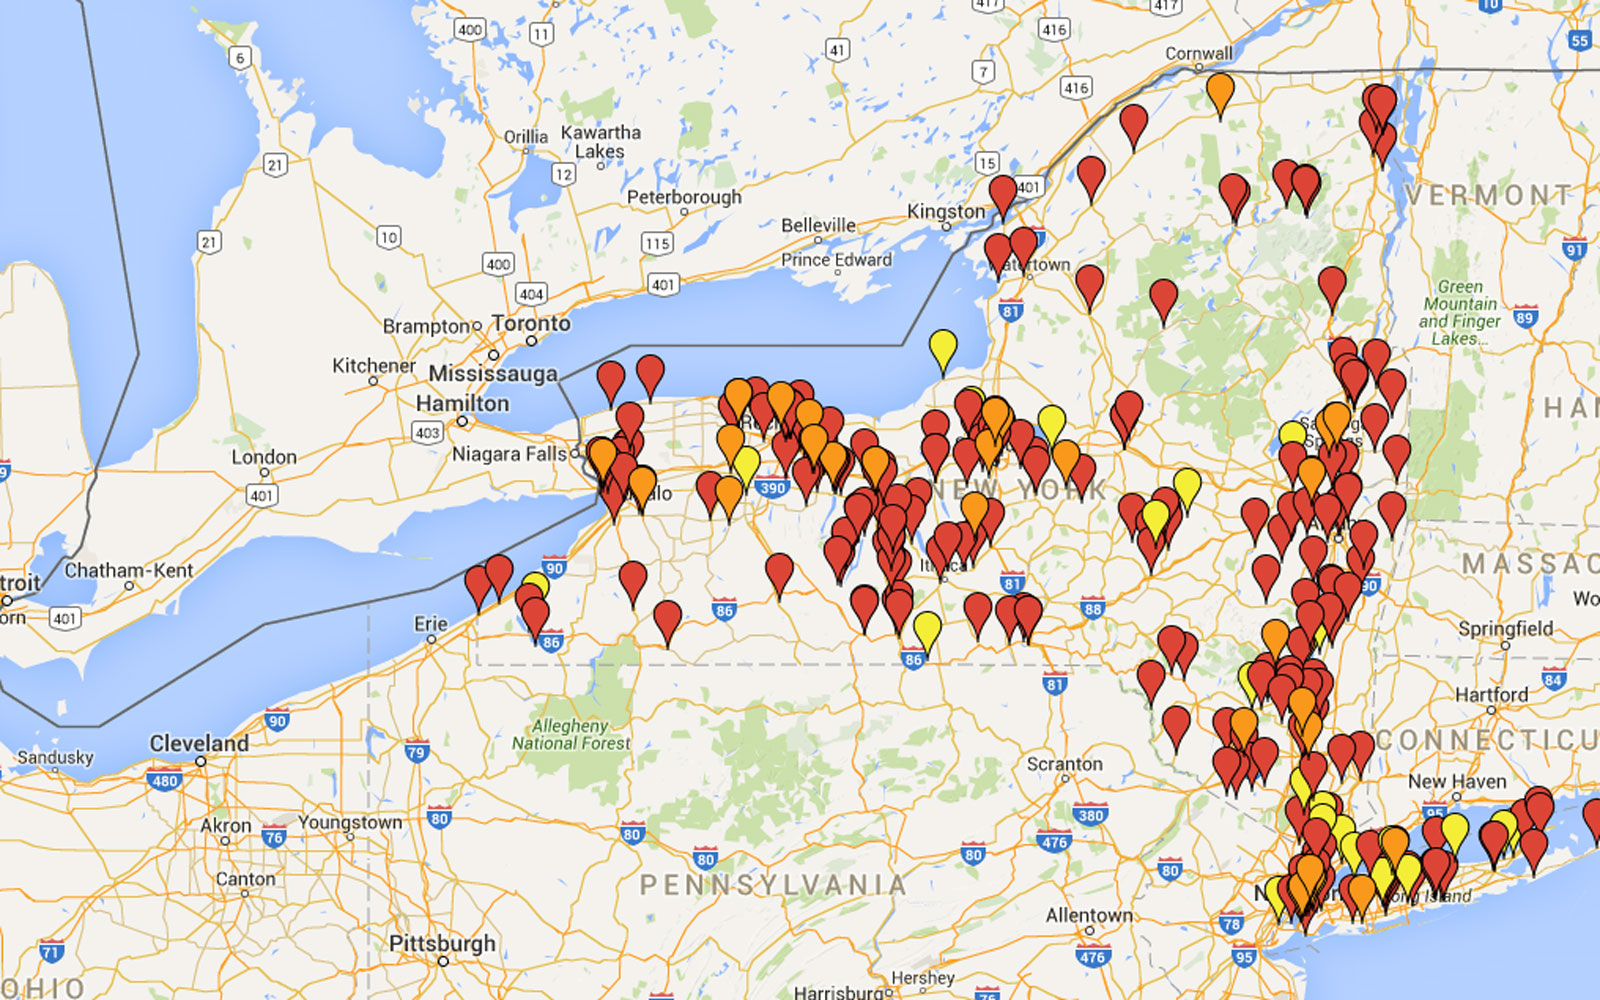 Every beer lover in New York state needs this map